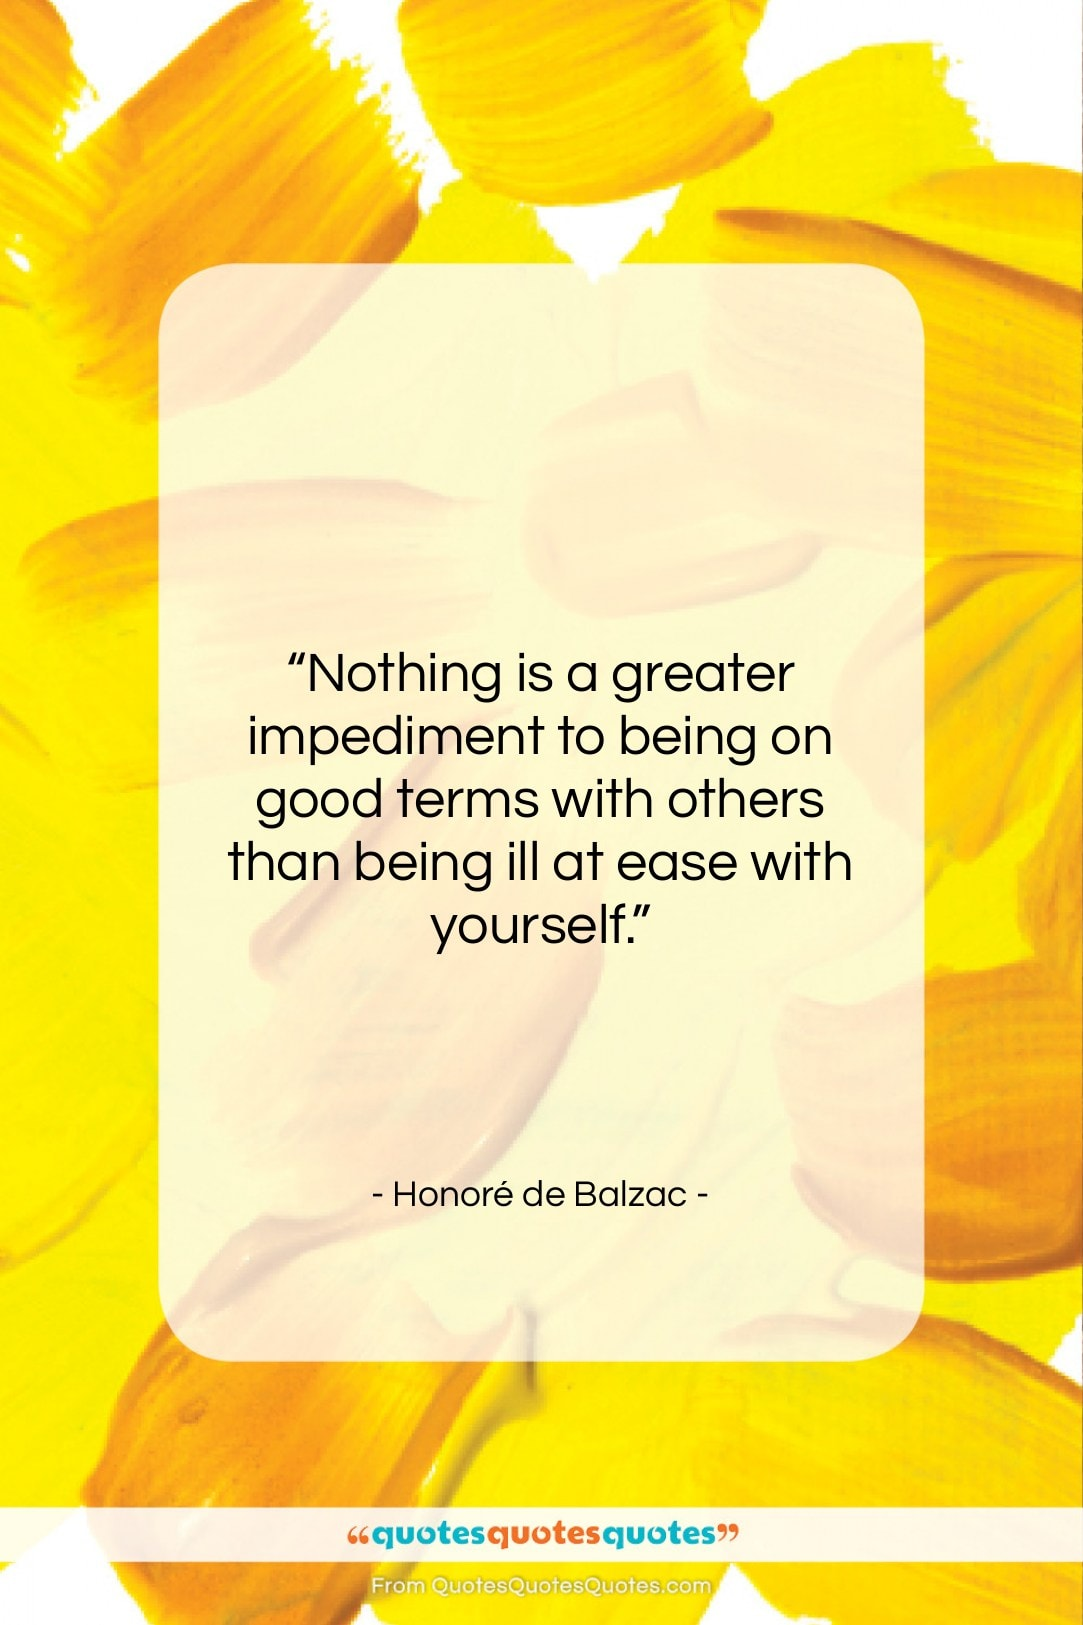 """Honoré de Balzac quote: """"Nothing is a greater impediment to being…""""- at QuotesQuotesQuotes.com"""